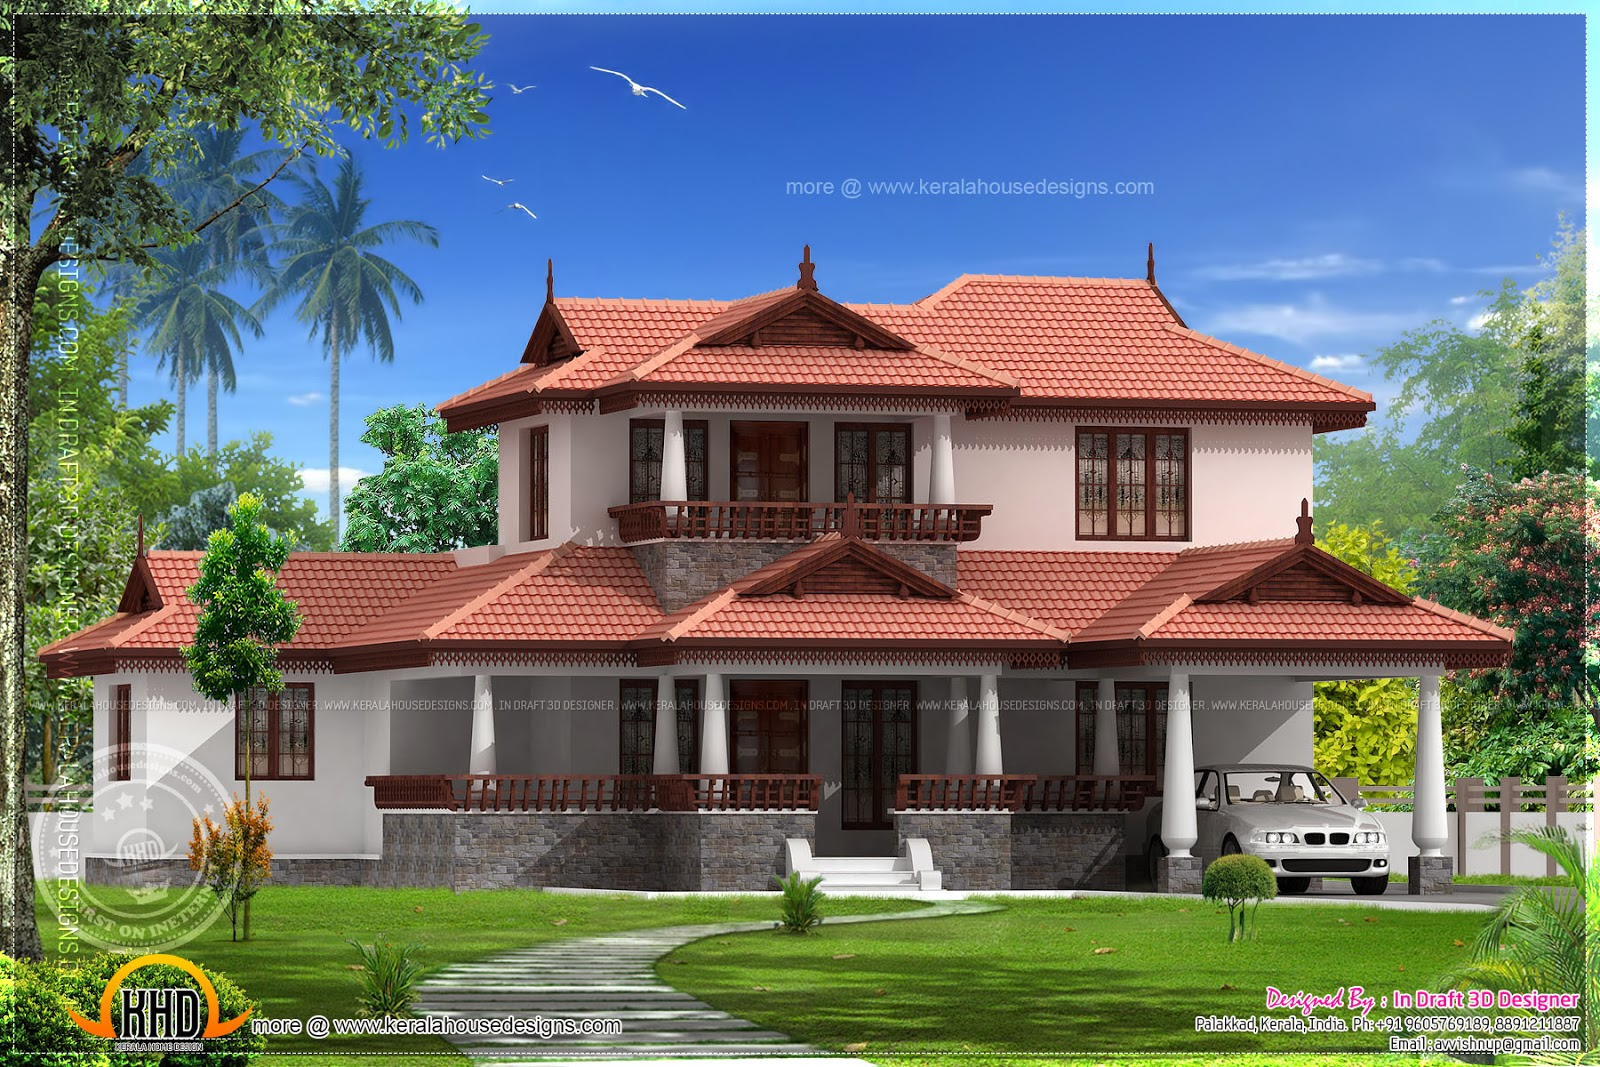 3 bedroom kerala model home elevation kerala home design for Kerala house models photos